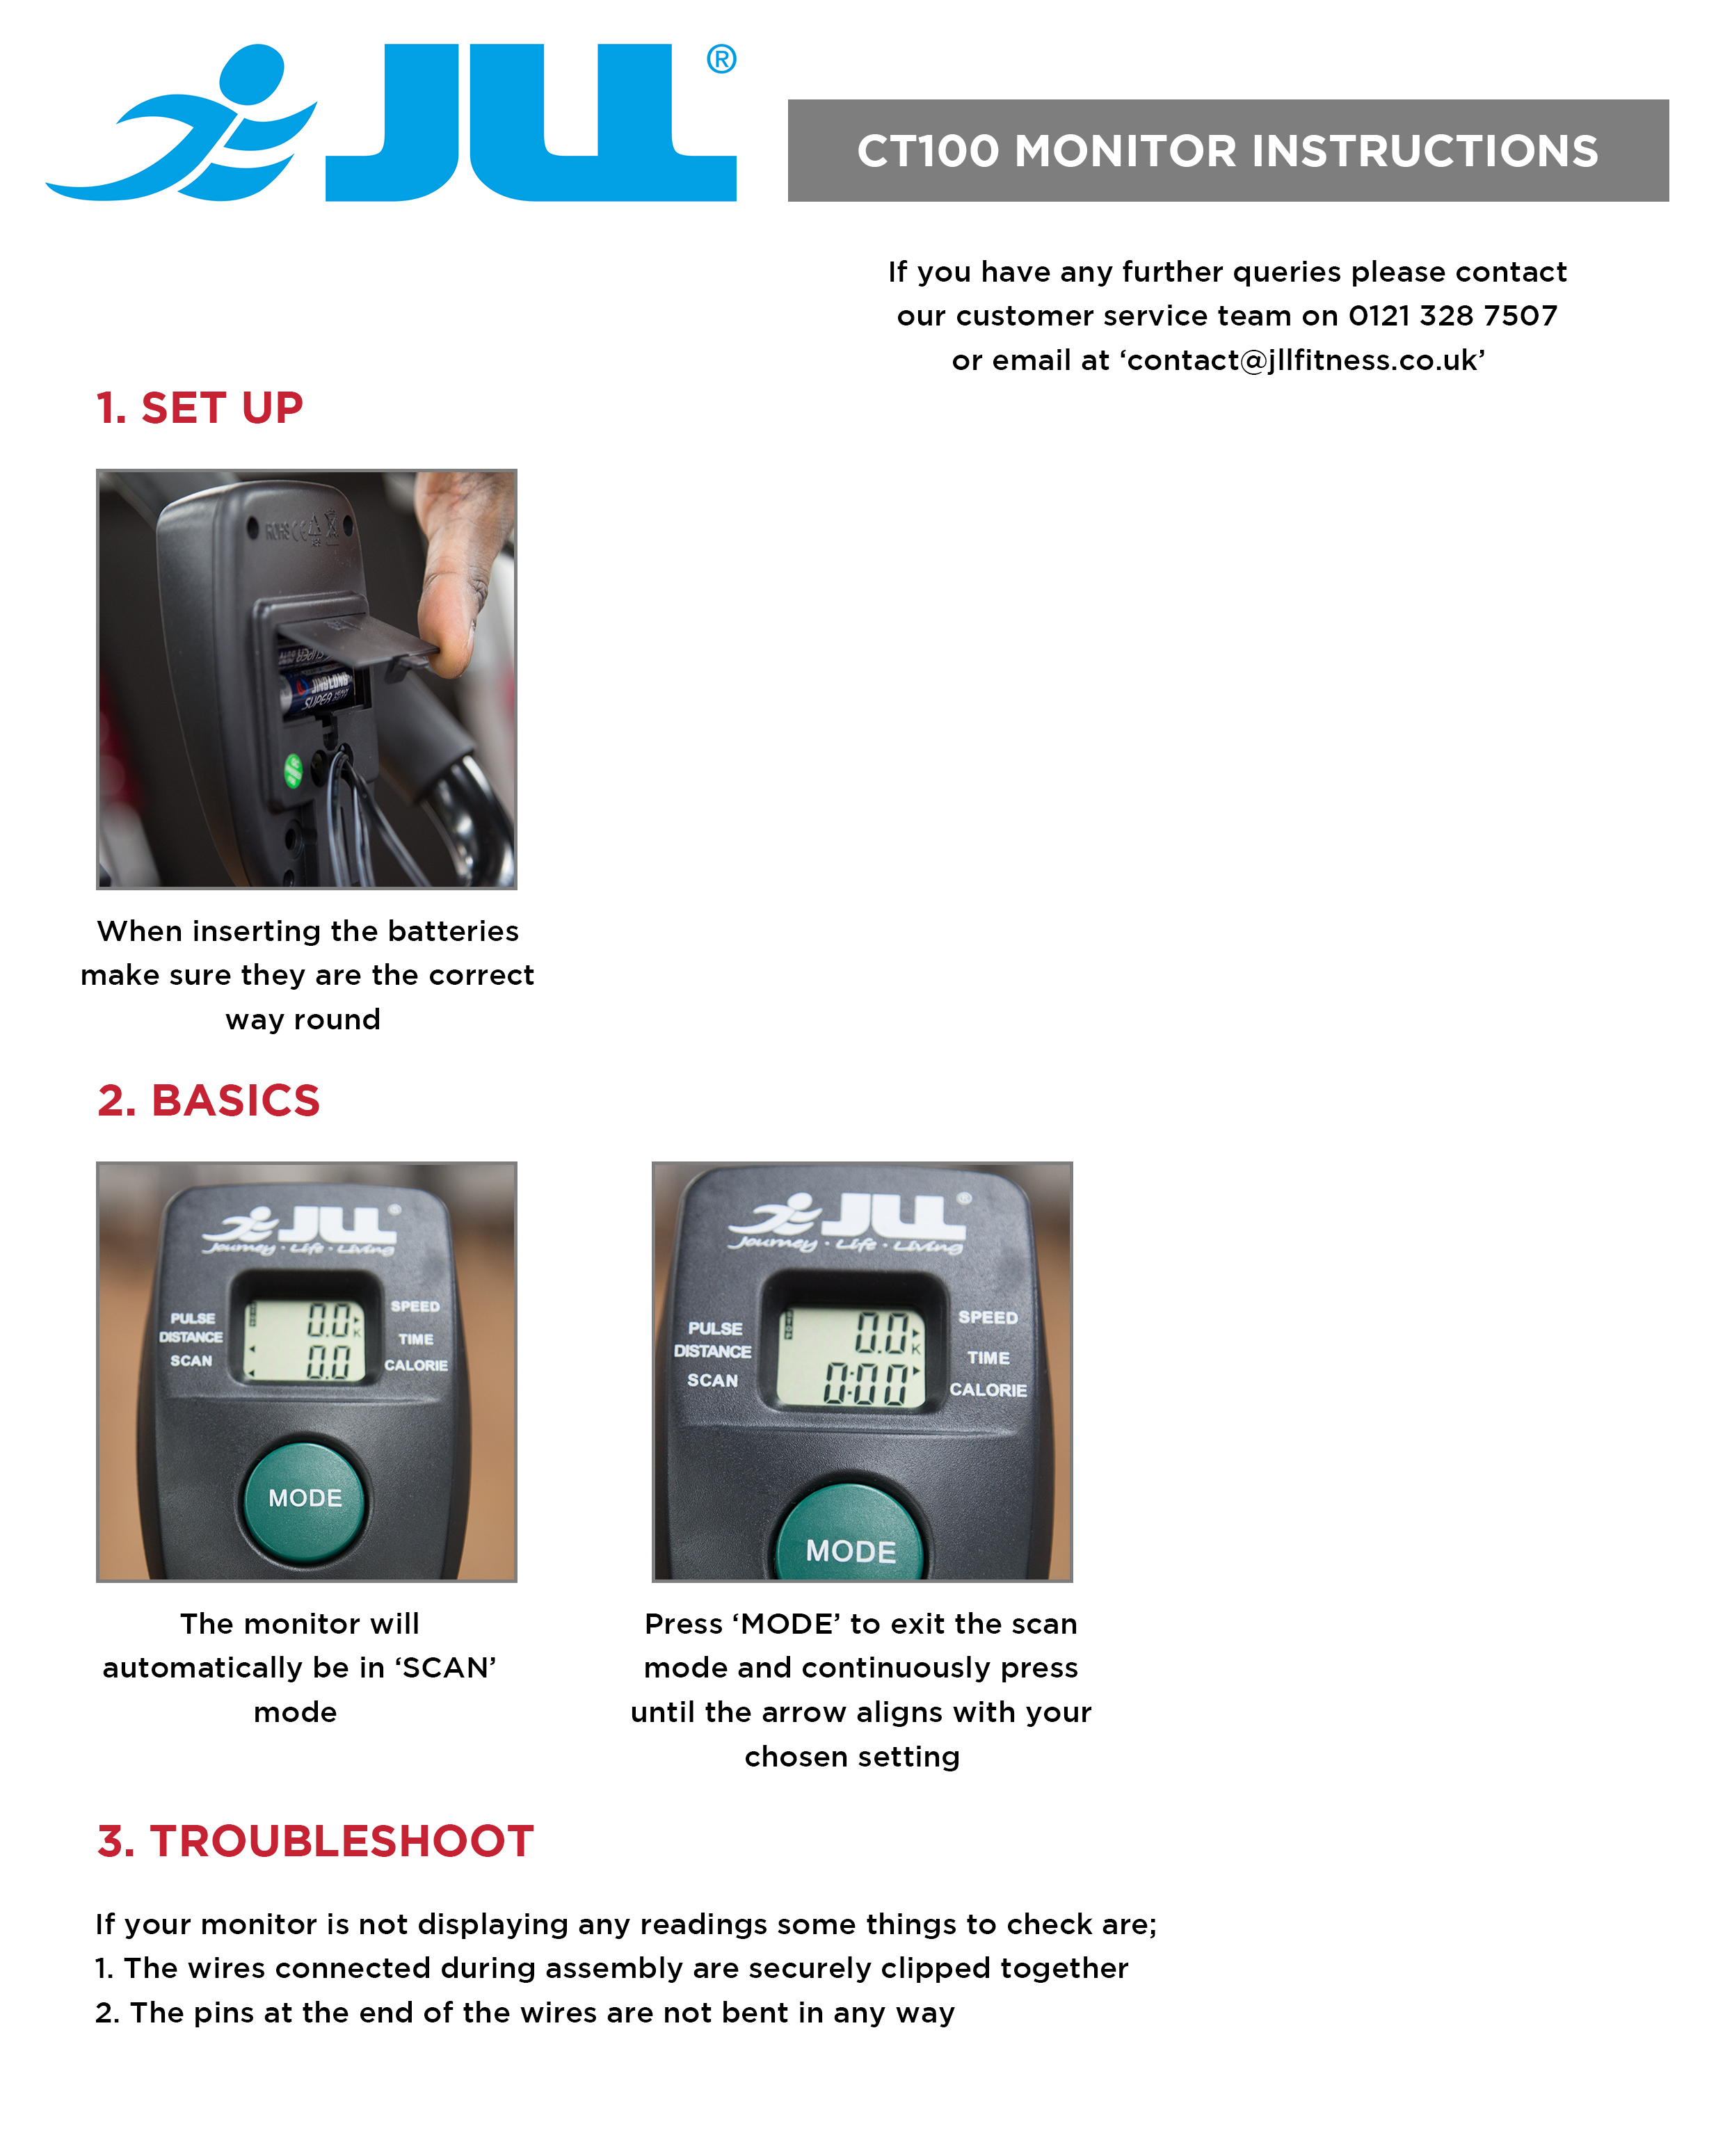 CT100 Monitor Instructions